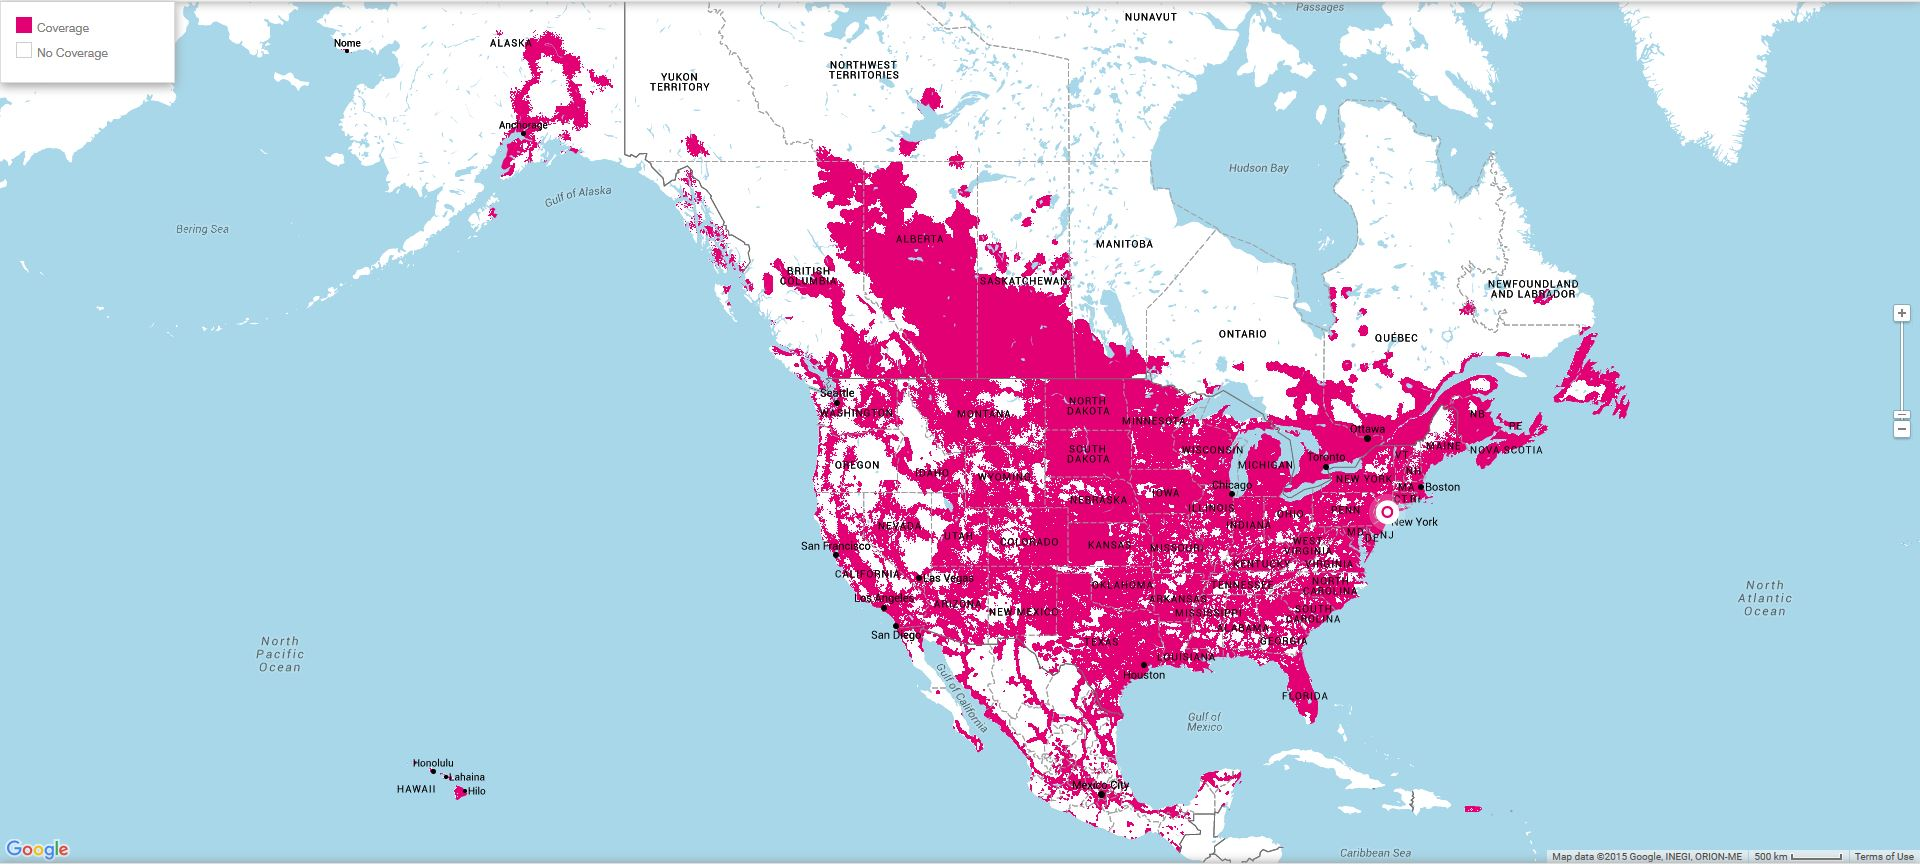 T Mobile US Coverage